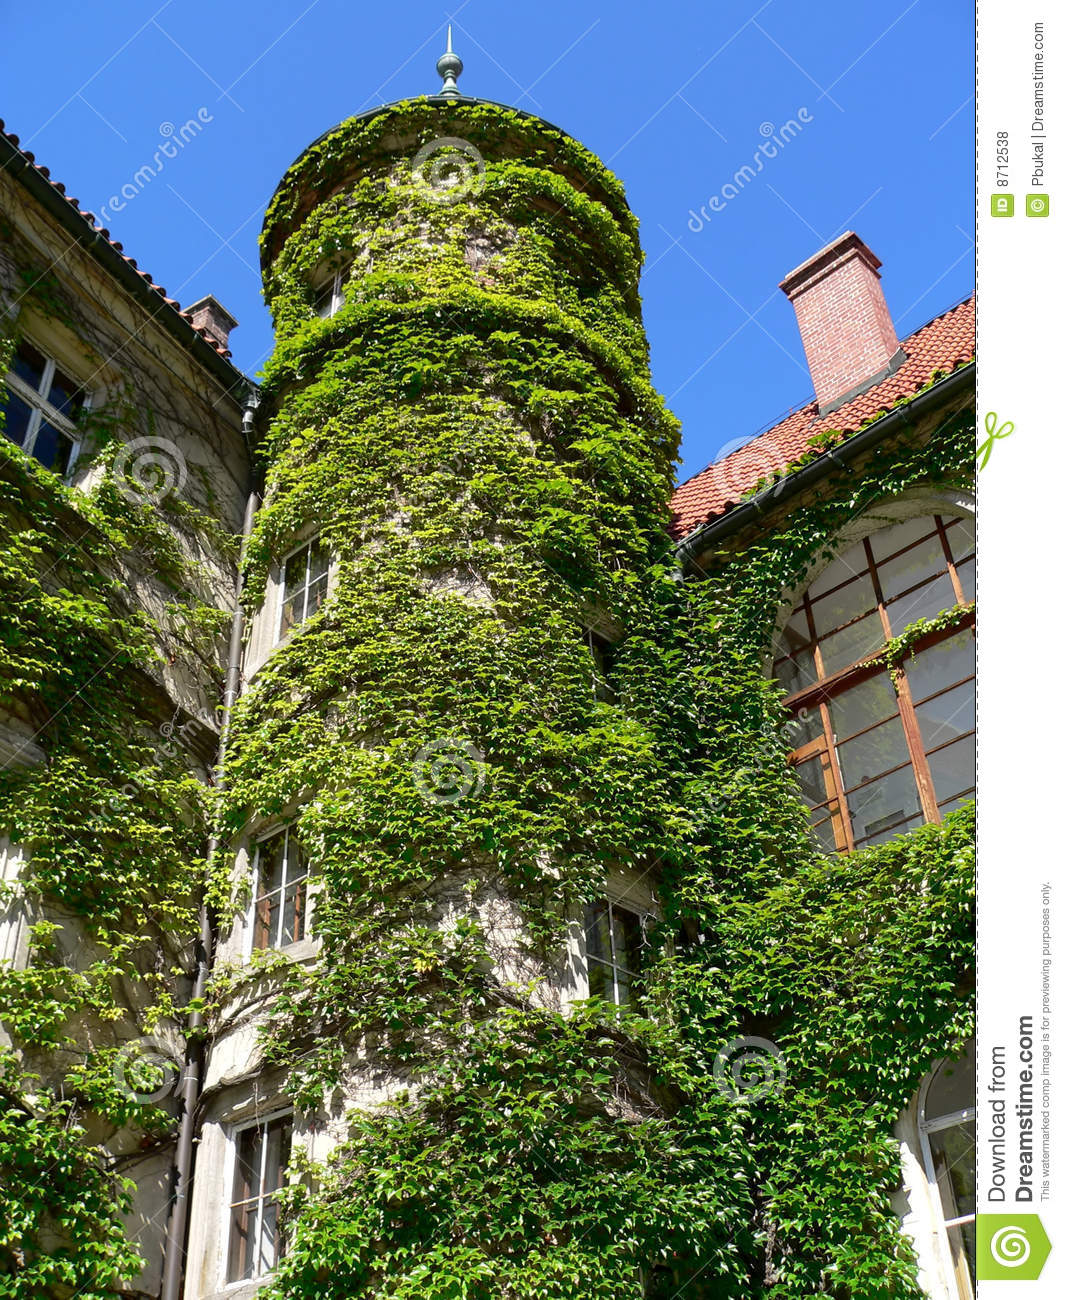 Overgrown Tower Royalty Free Stock Photos Image 8712538